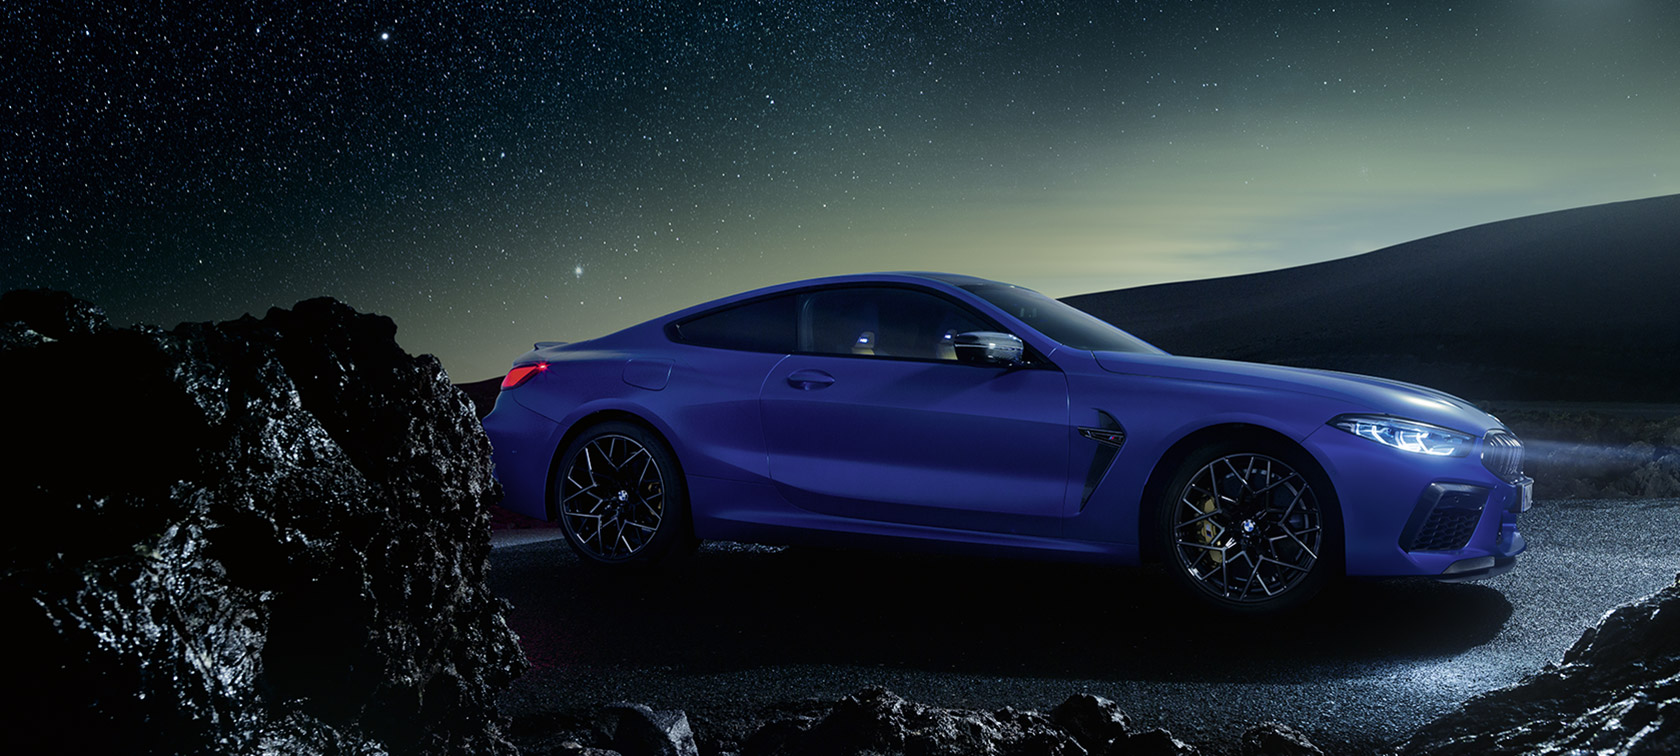 BMW M8 Competition Coupé,, side view, driving at night with full moon.